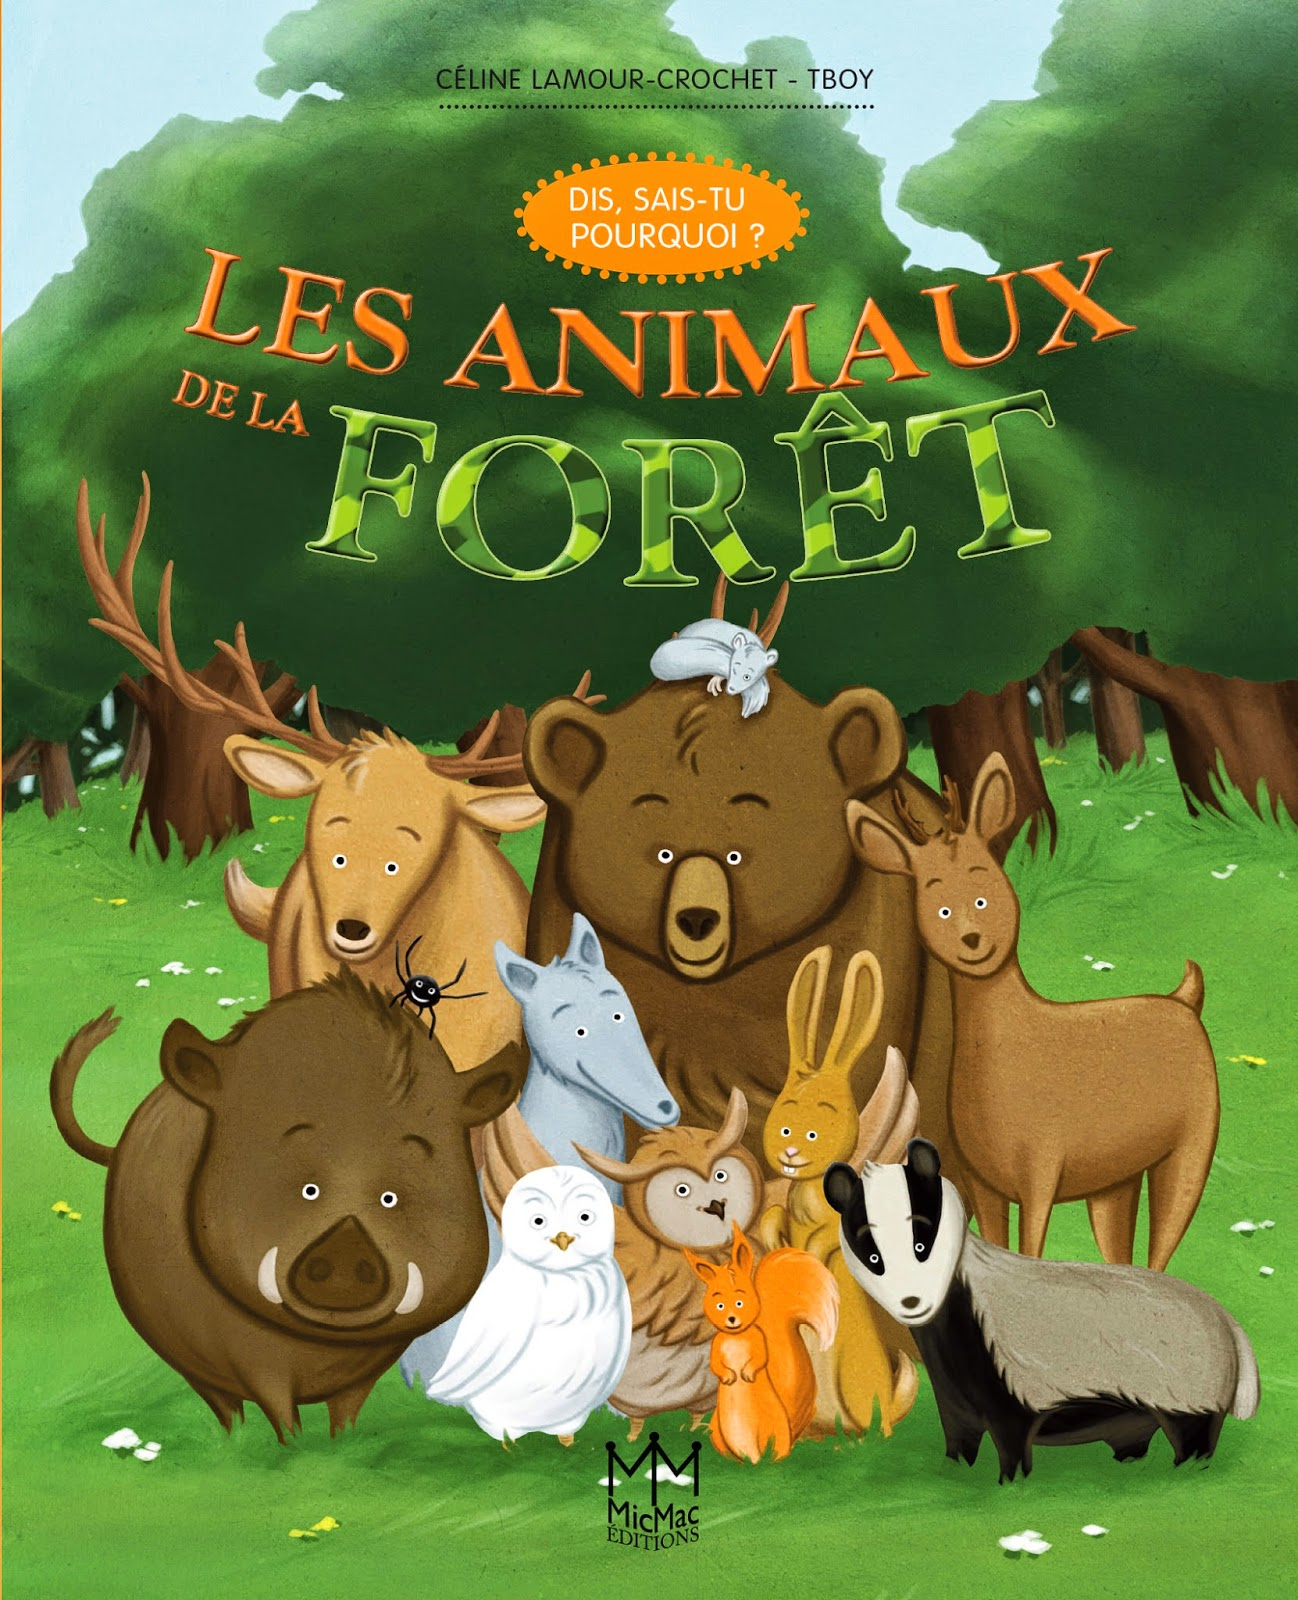 http://www.amazon.fr/animaux-for%C3%AAt-Dis-sais-tu-pourquoi/dp/236221284X/ref=sr_1_5?s=books&ie=UTF8&qid=1403969027&sr=1-5&keywords=c%C3%A9line+lamour-crochet